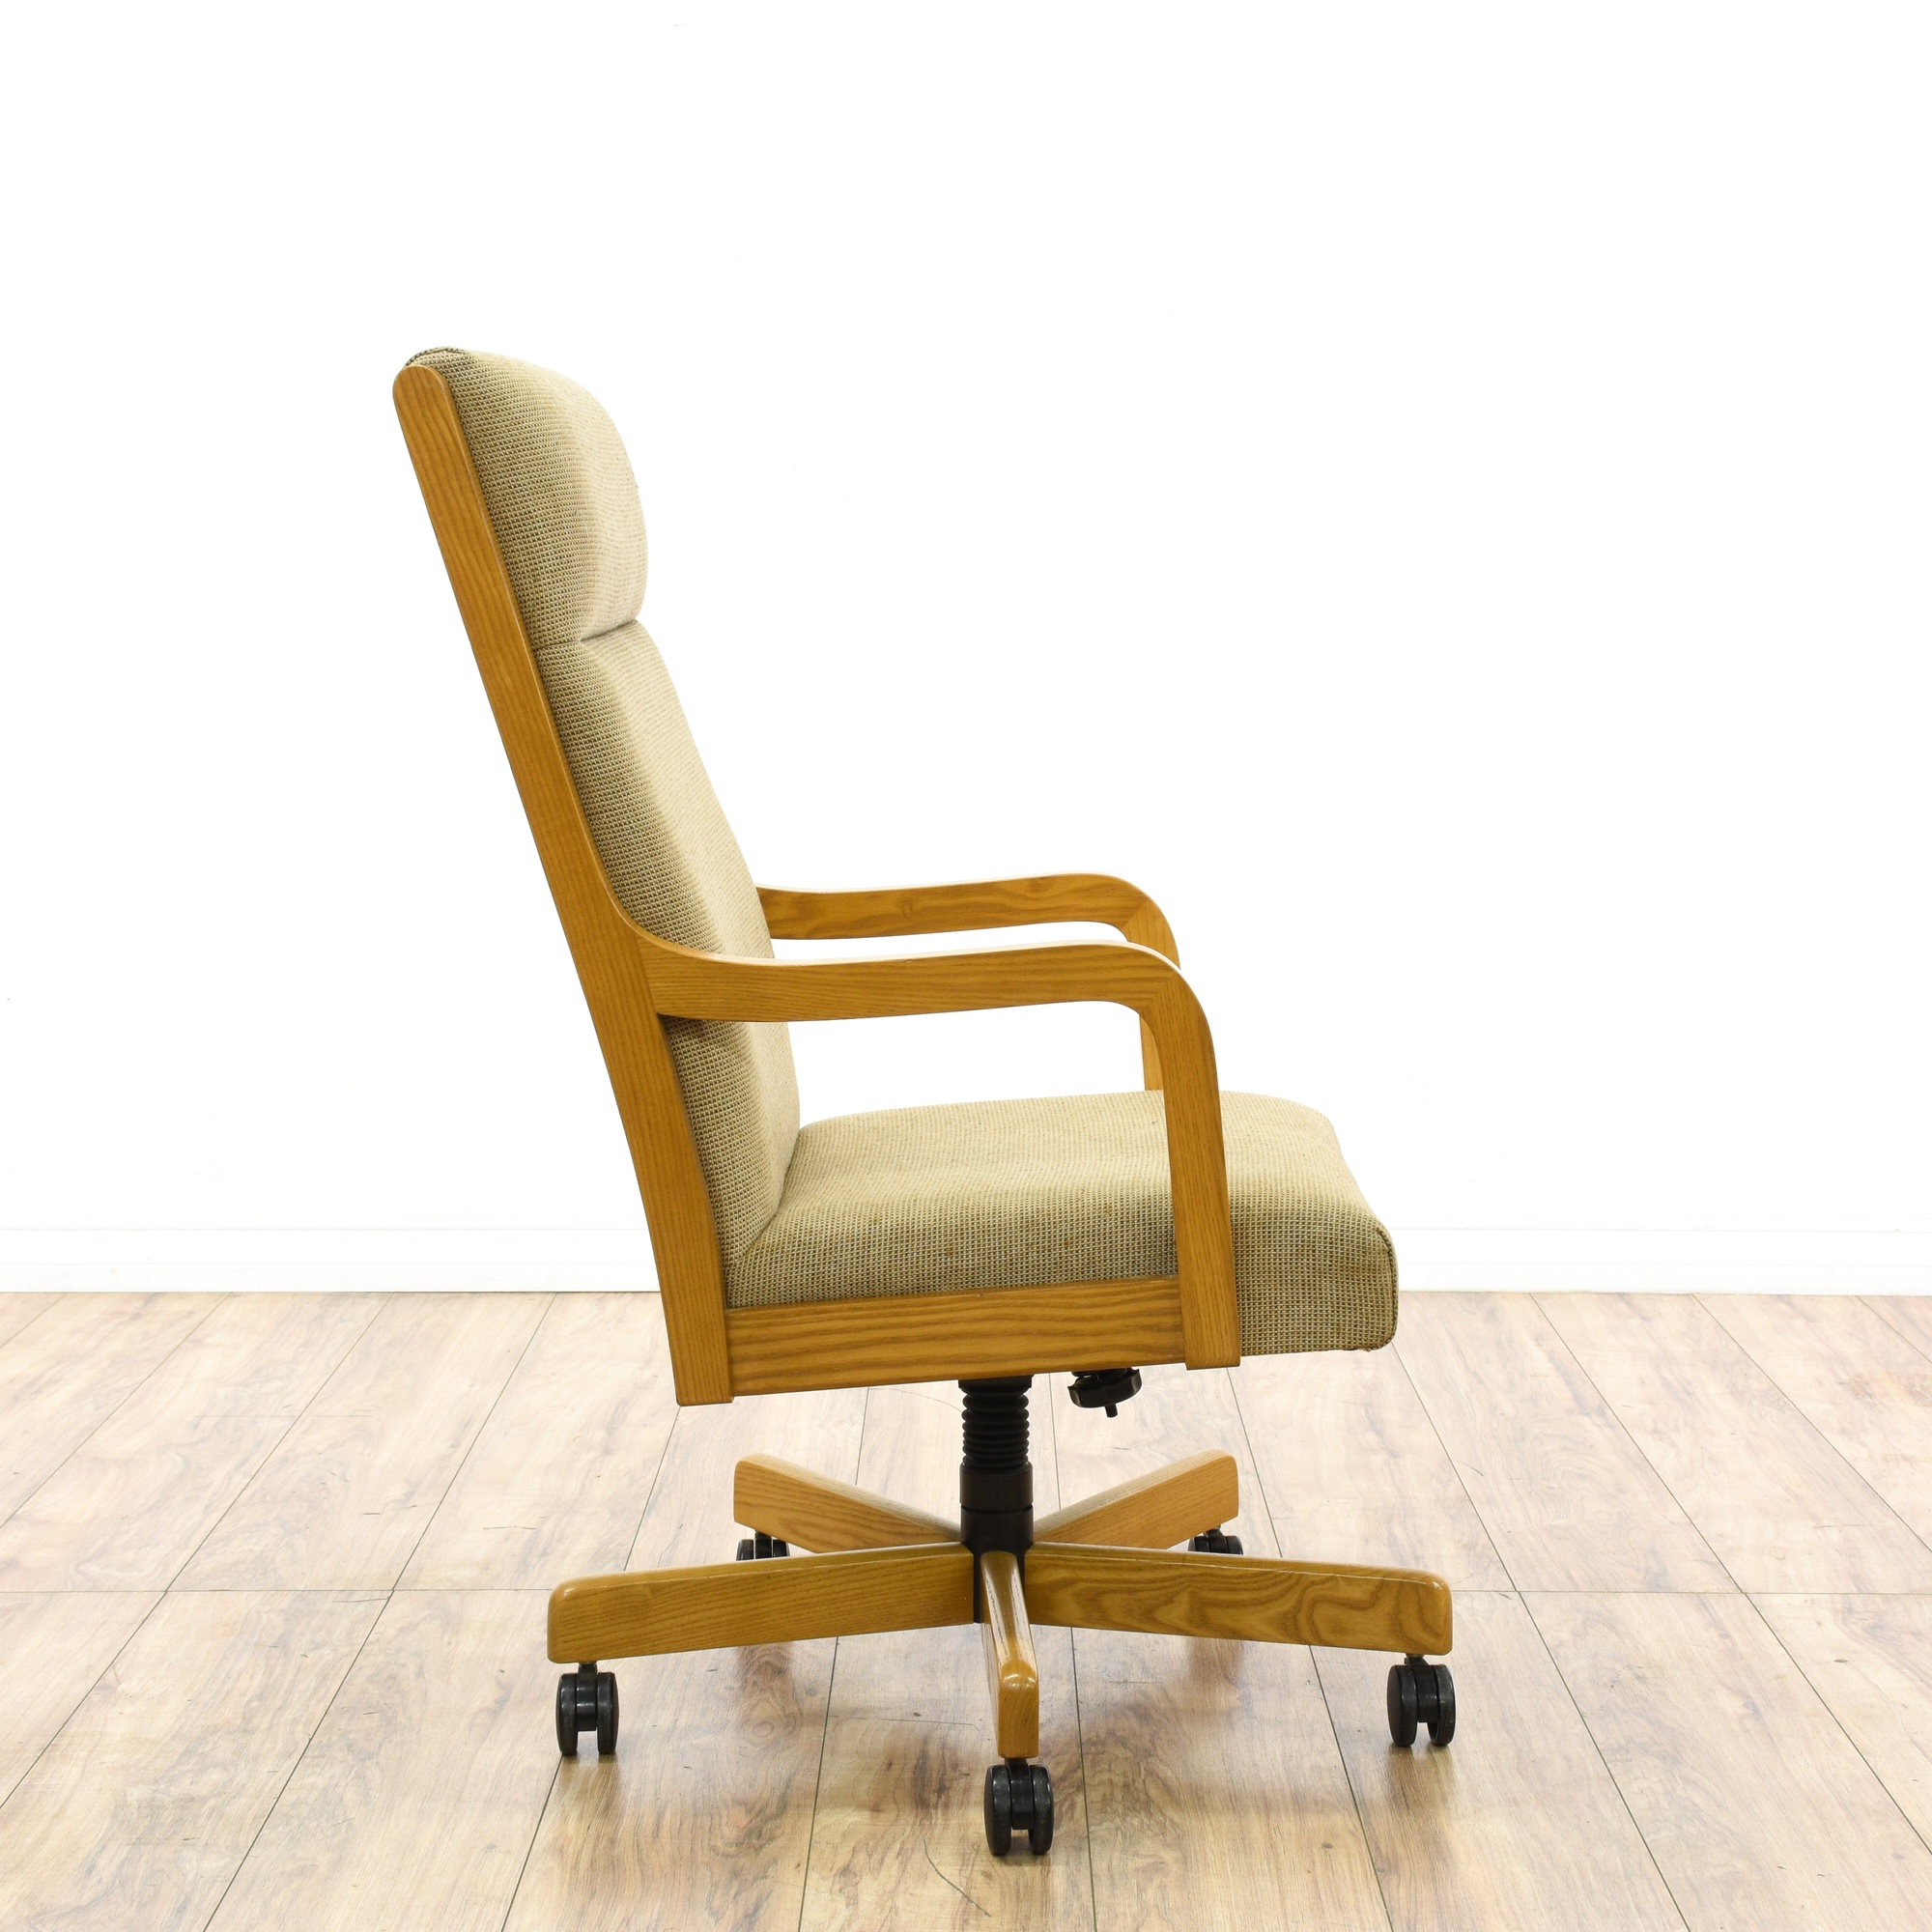 Mid Century Modernist High Back Or Desk Chair W New: Mid Century Modern Light Oak Beige Office Chair